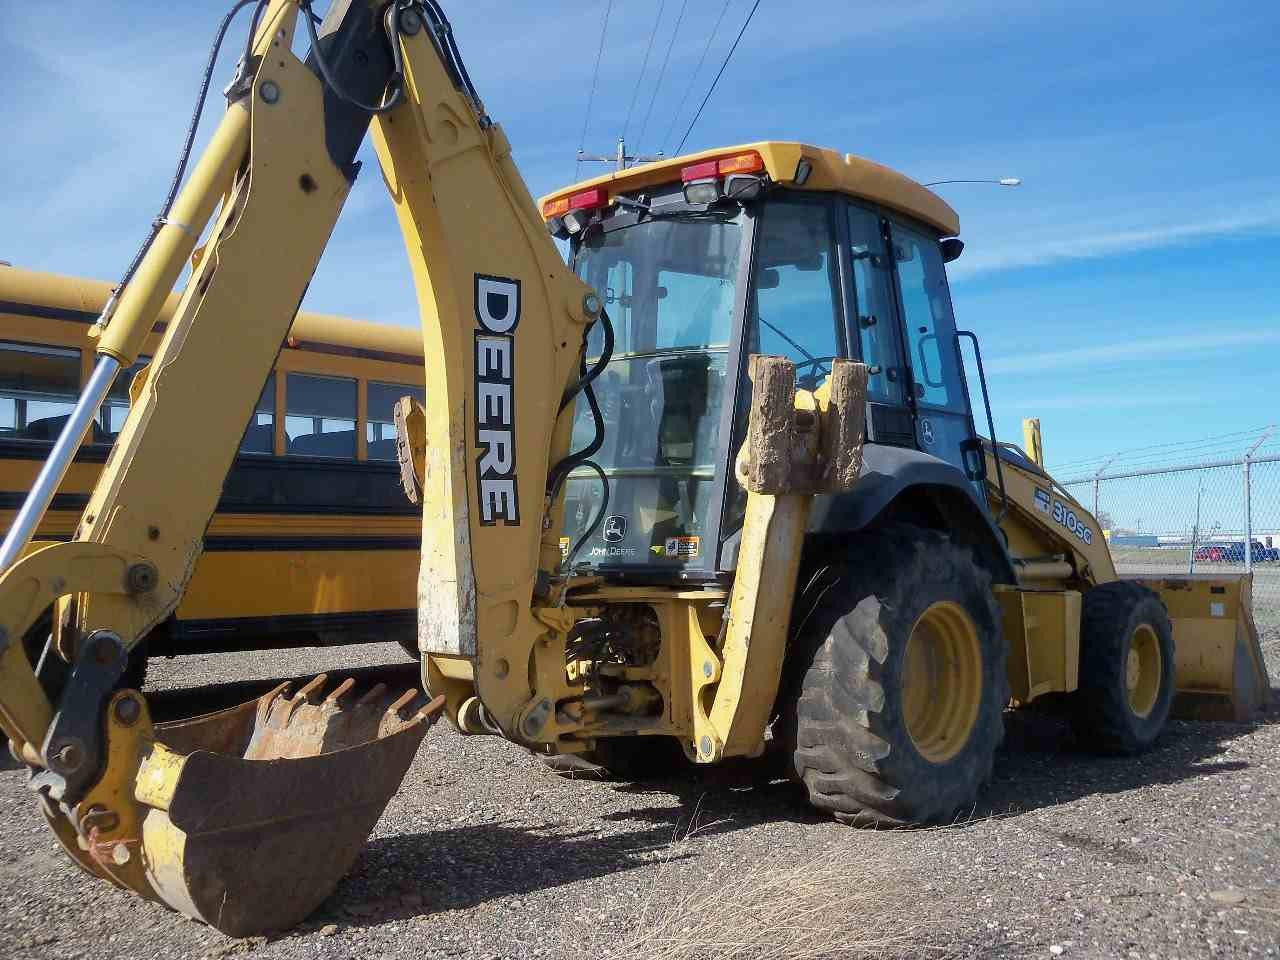 John Deere 310 SG Backhoe - 2005 310SG - Berry Machinery